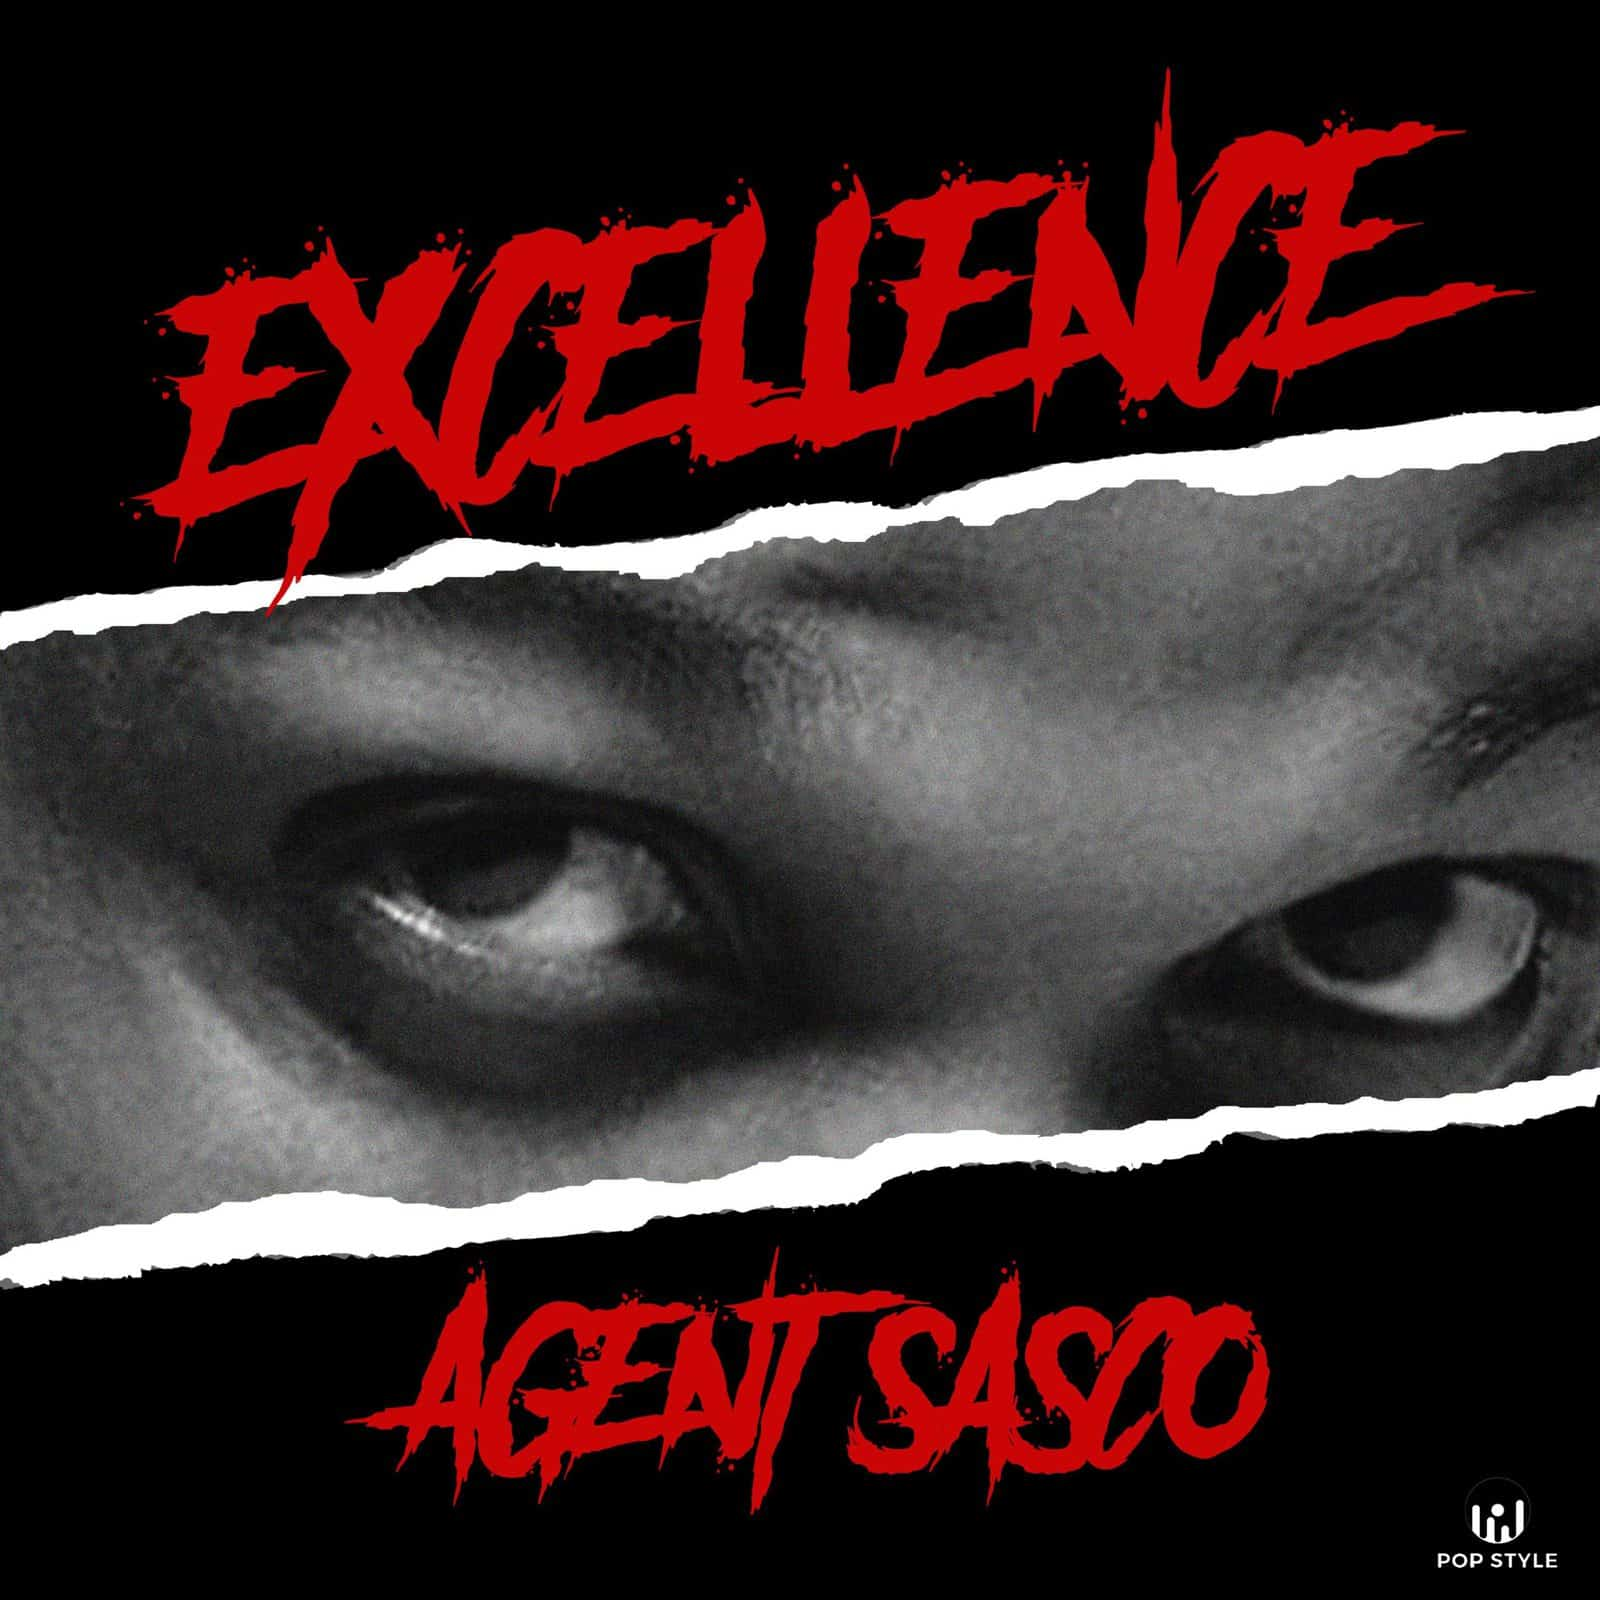 Agent Sasco - Excellence - Pop Style Music